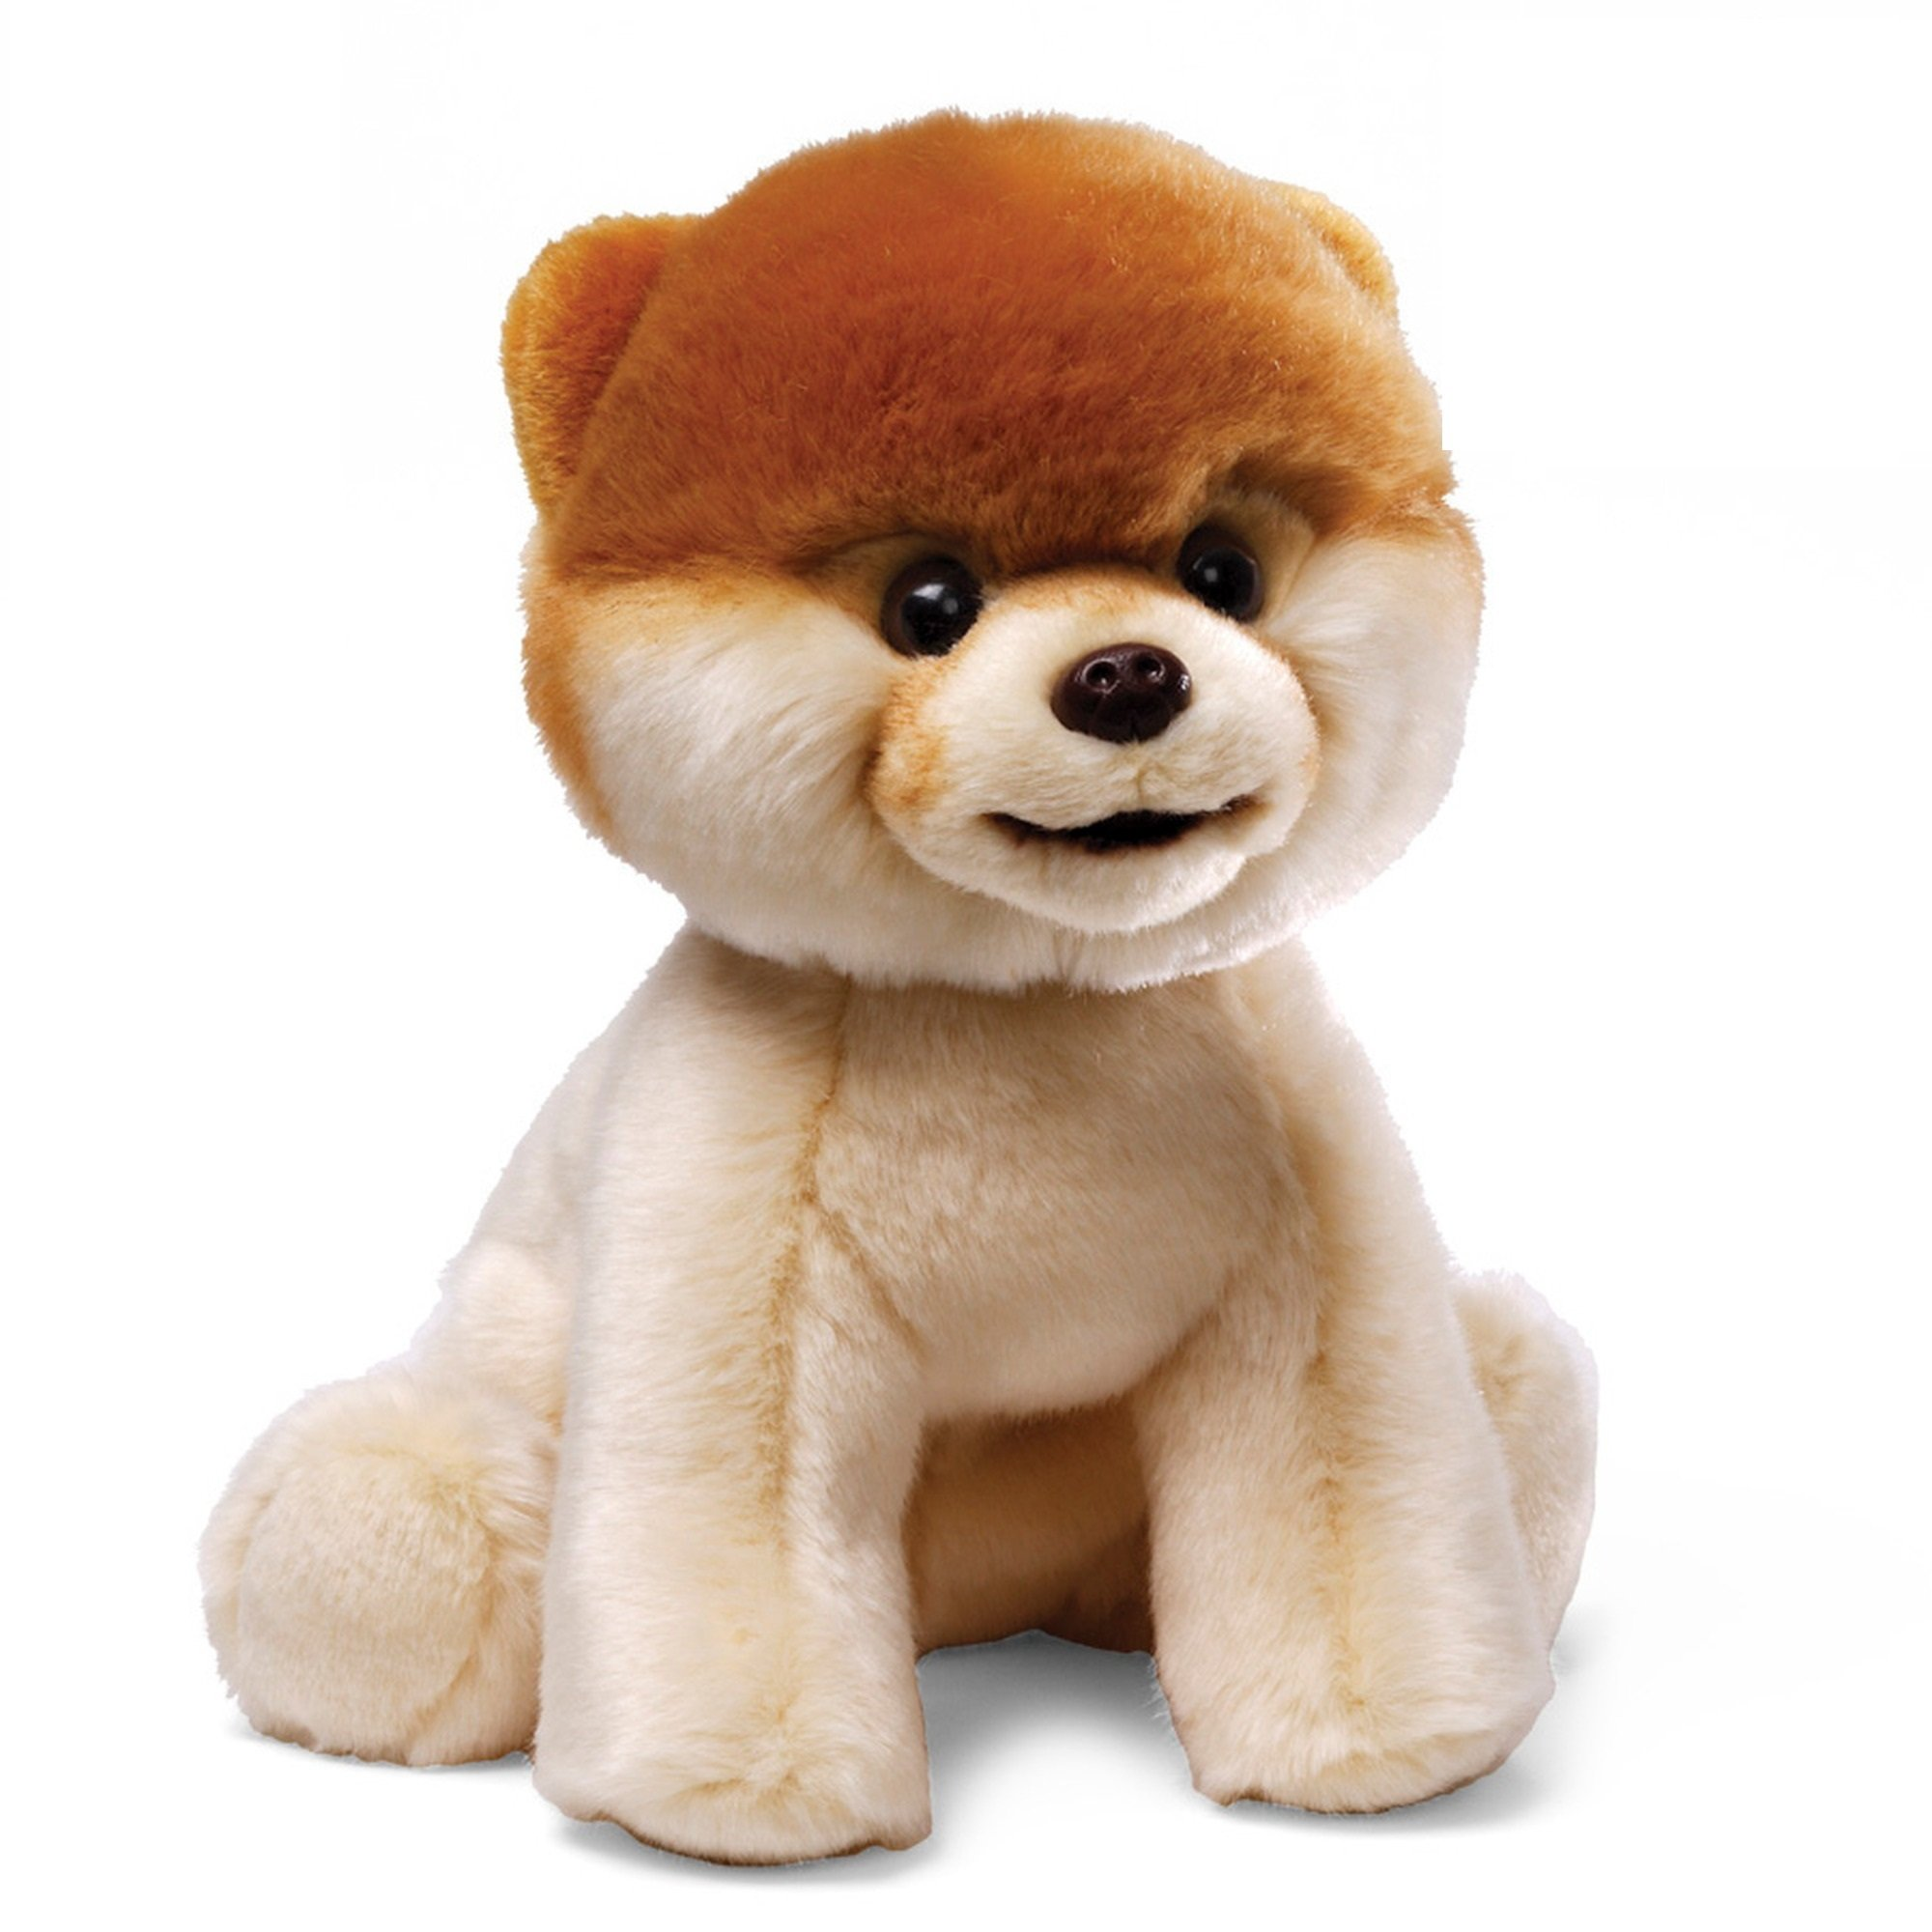 Cutest Stuffed Plush Toy Dog